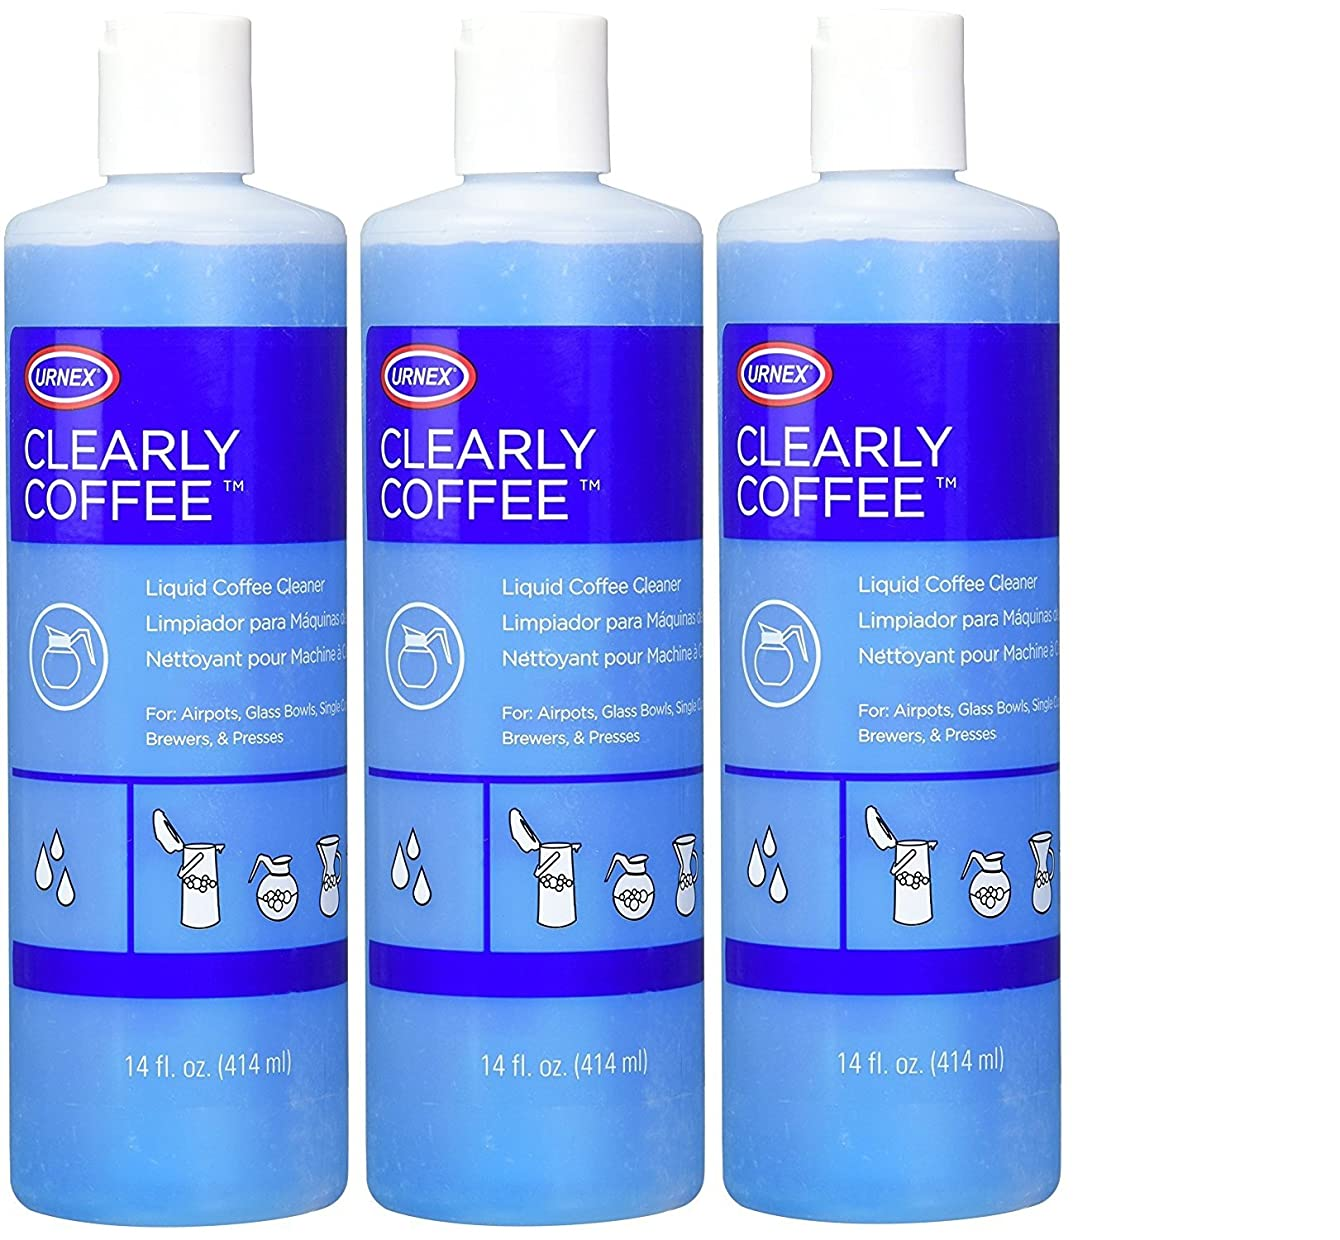 Urnex Clearly Coffee Pot Cleaner - 3 Pack - [Made in The USA] - French Press Liquid Cleaner for Glass Bowls Airpots Satellite Brewers and Thermal Servers Removes Coffee Oils